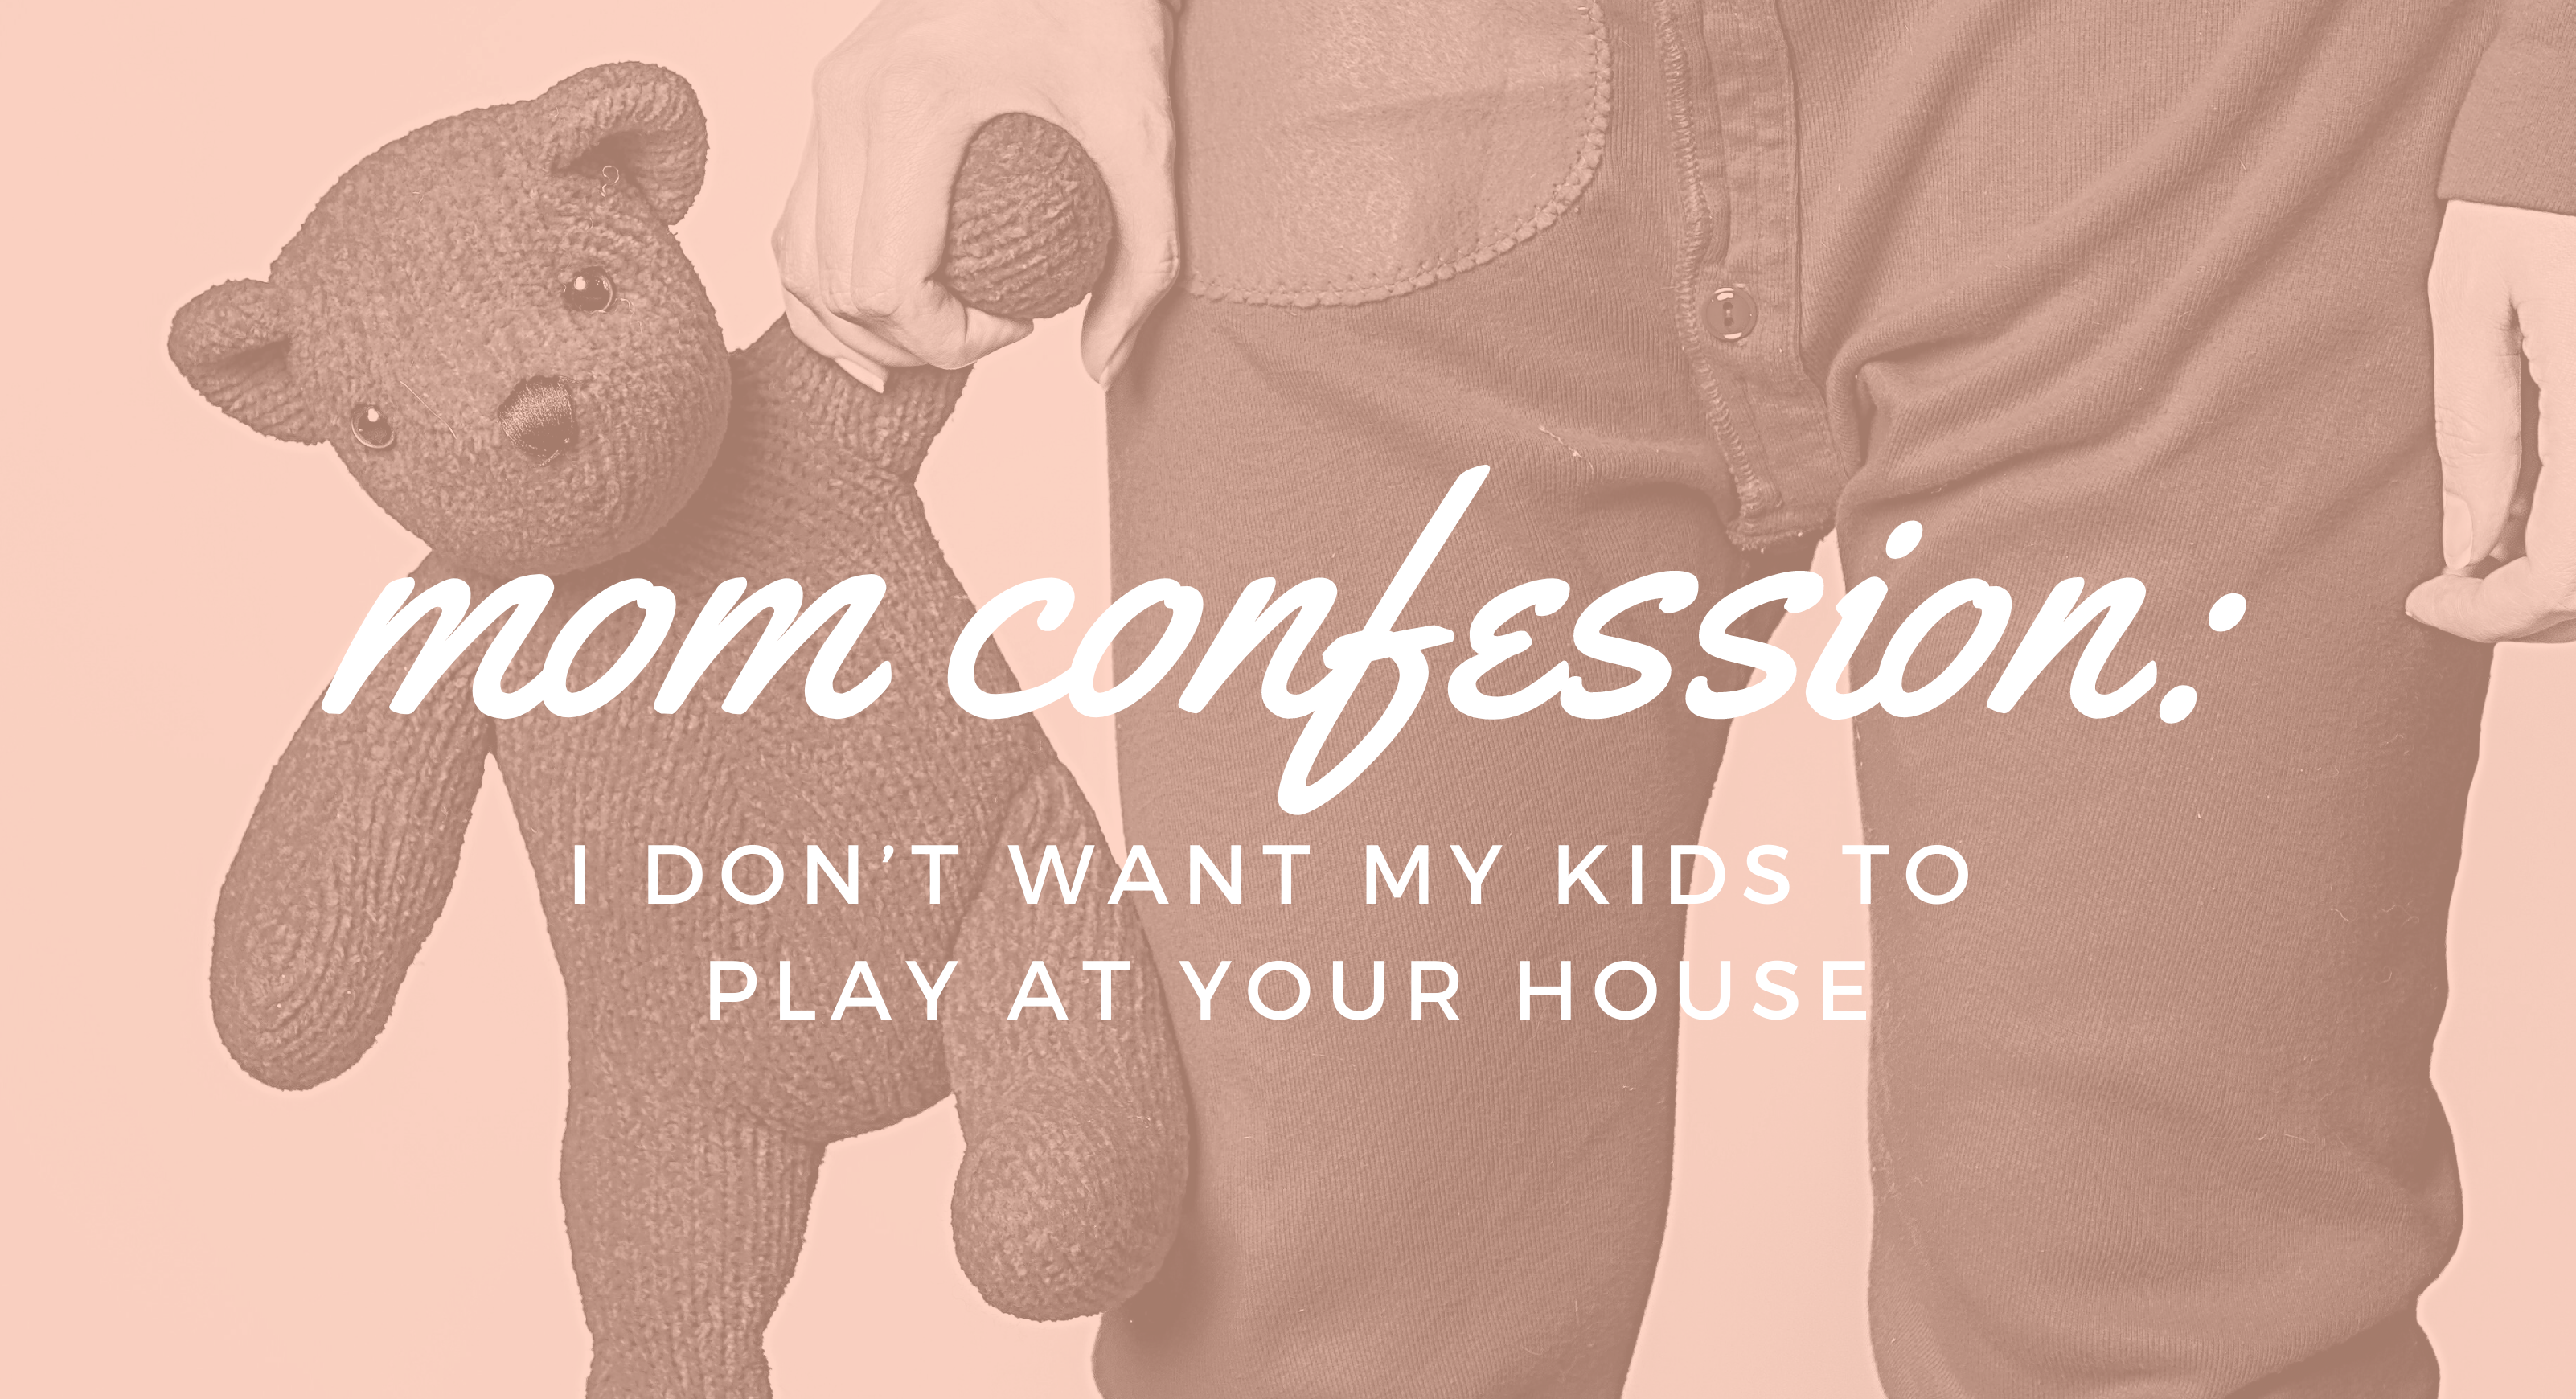 Mom confession: I Don't Want My Kids to Play at Your House